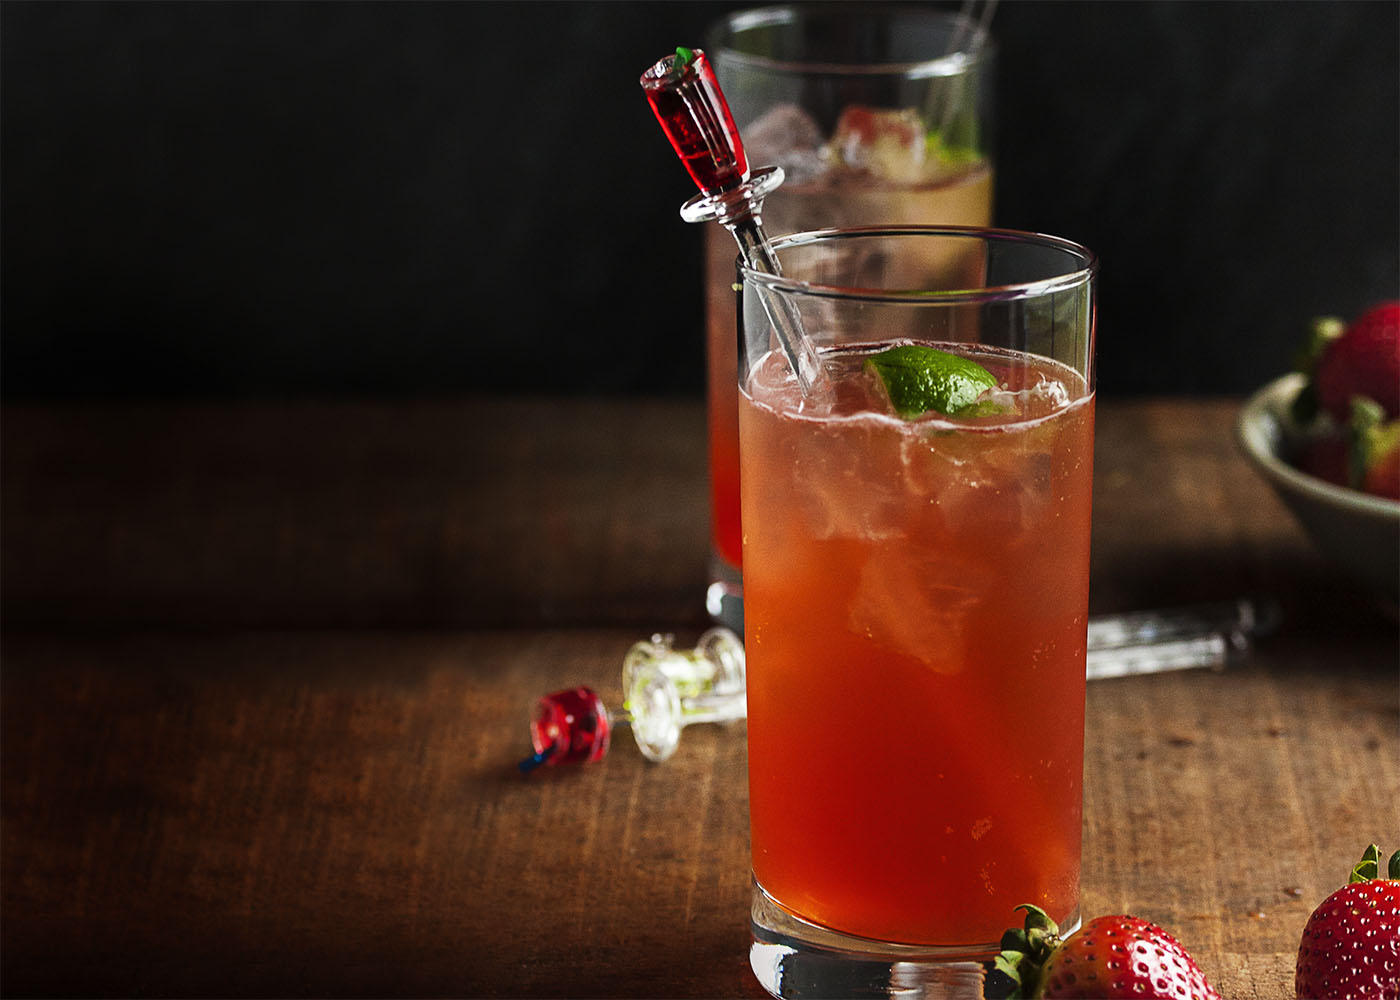 Strawberry Lime Vodka Collins - Throw away the collins mix! Homemade strawberry syrup is the secret to this seriously tasty and seriously refreshing strawberry collins.   justalittlebitofbacon.com